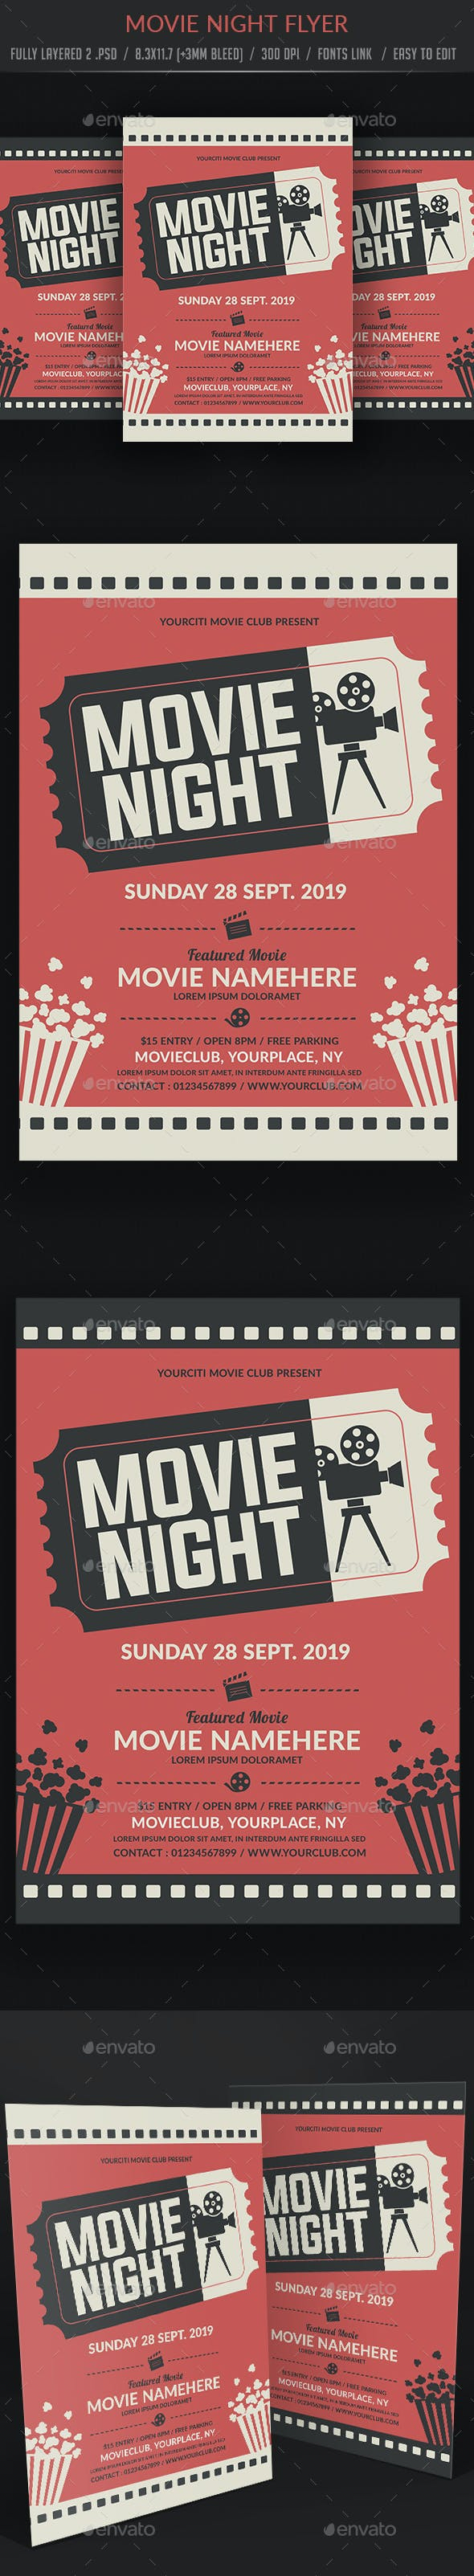 movie night flyer templates by artx2 graphicriver